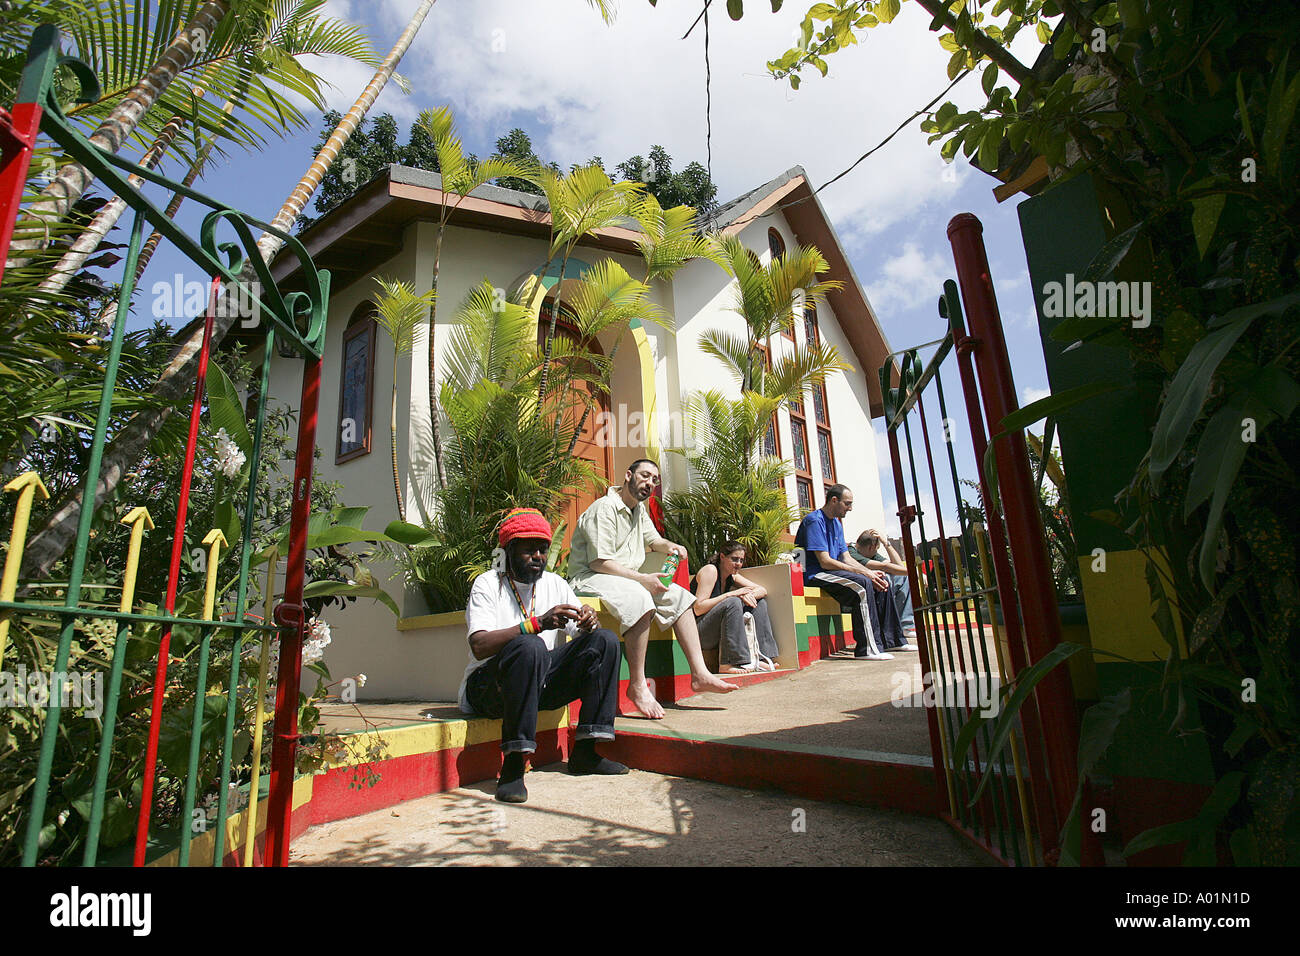 The gravesite and memorial of Bob Marley on the grounds of the childhood home of the famous reggae star - Stock Image